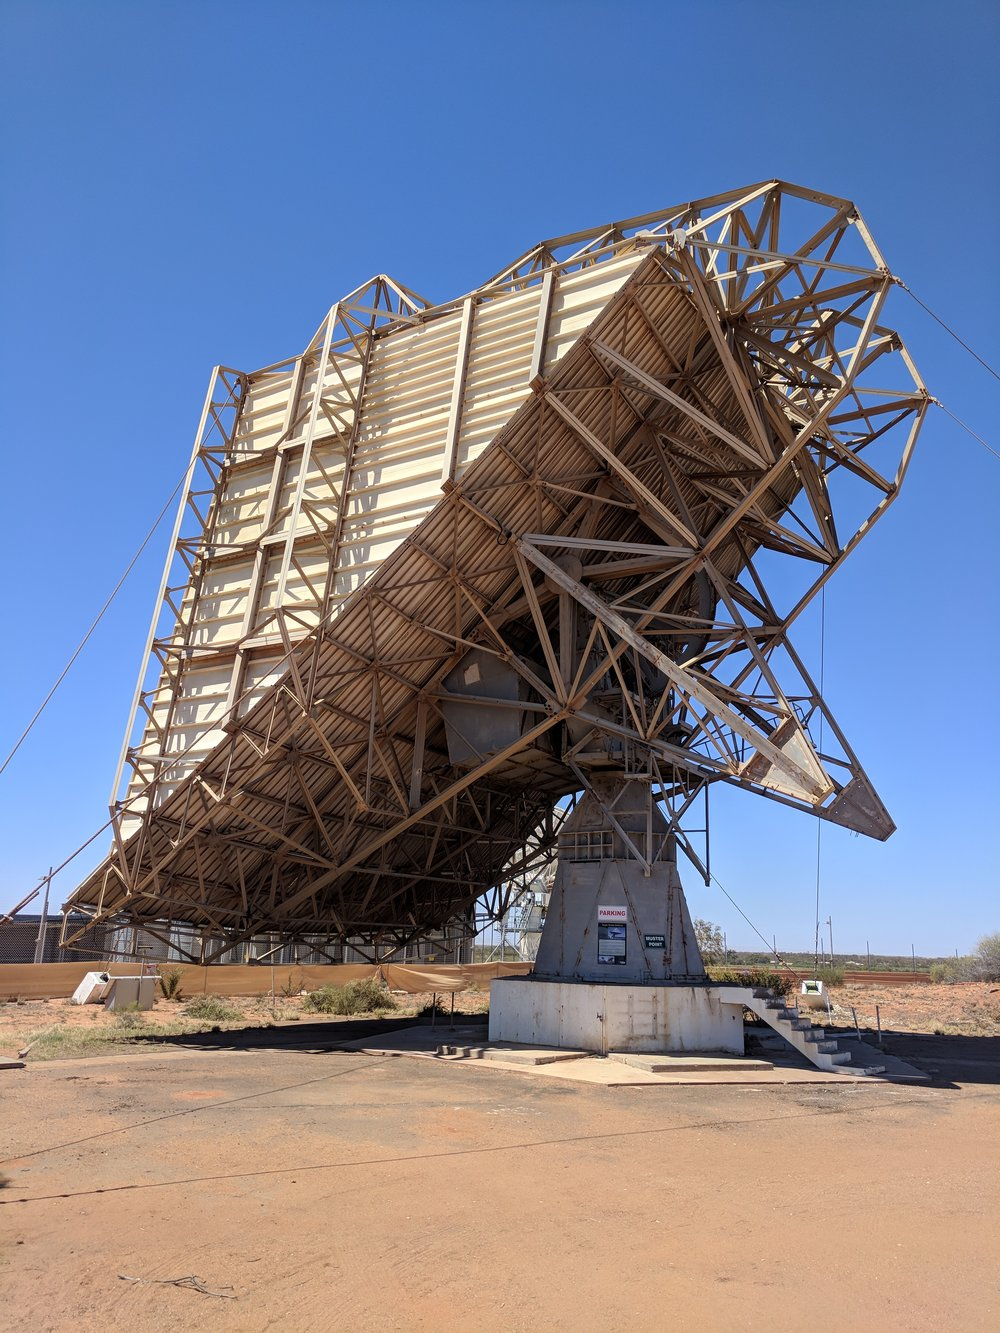 The 12.8 m wide Casshorn antenna or 'sugar scoop', this was in fact what received the infamous words.... That's one small step for man, one giant leap for mankind.""